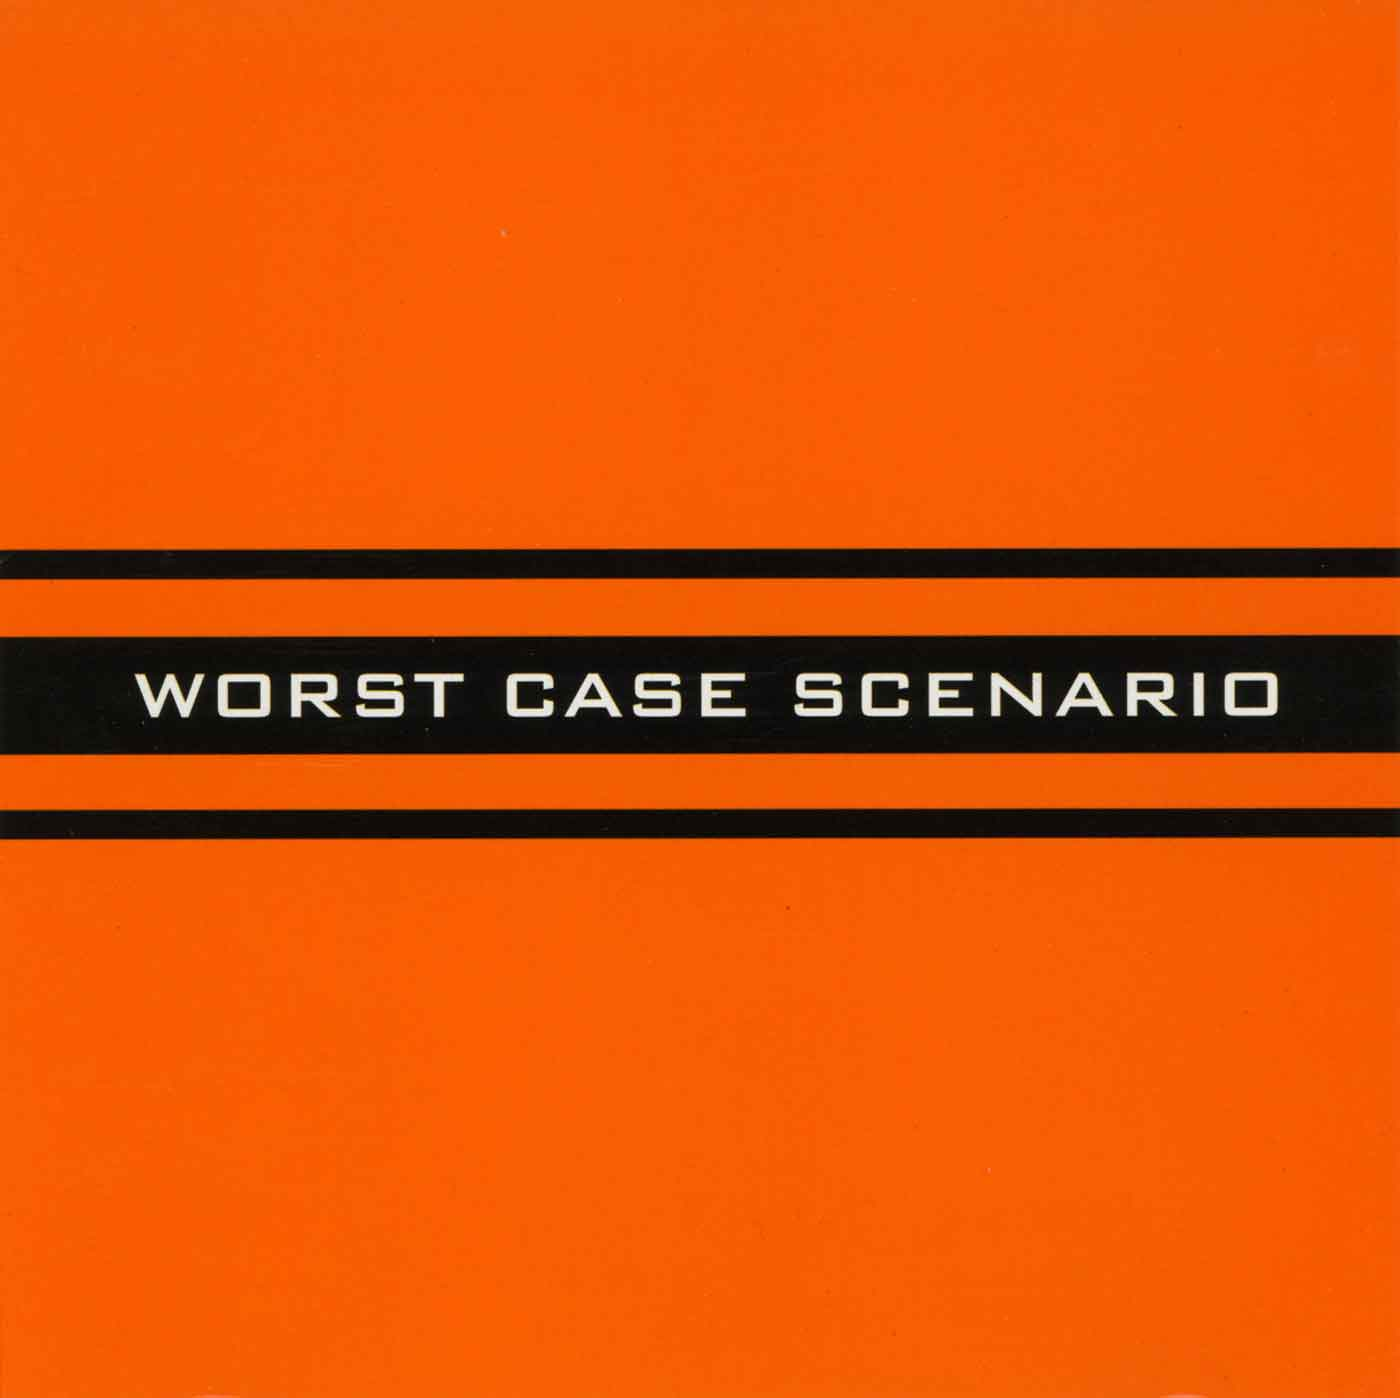 Worst Case Scenario - The Complete Works CD - Monoroid